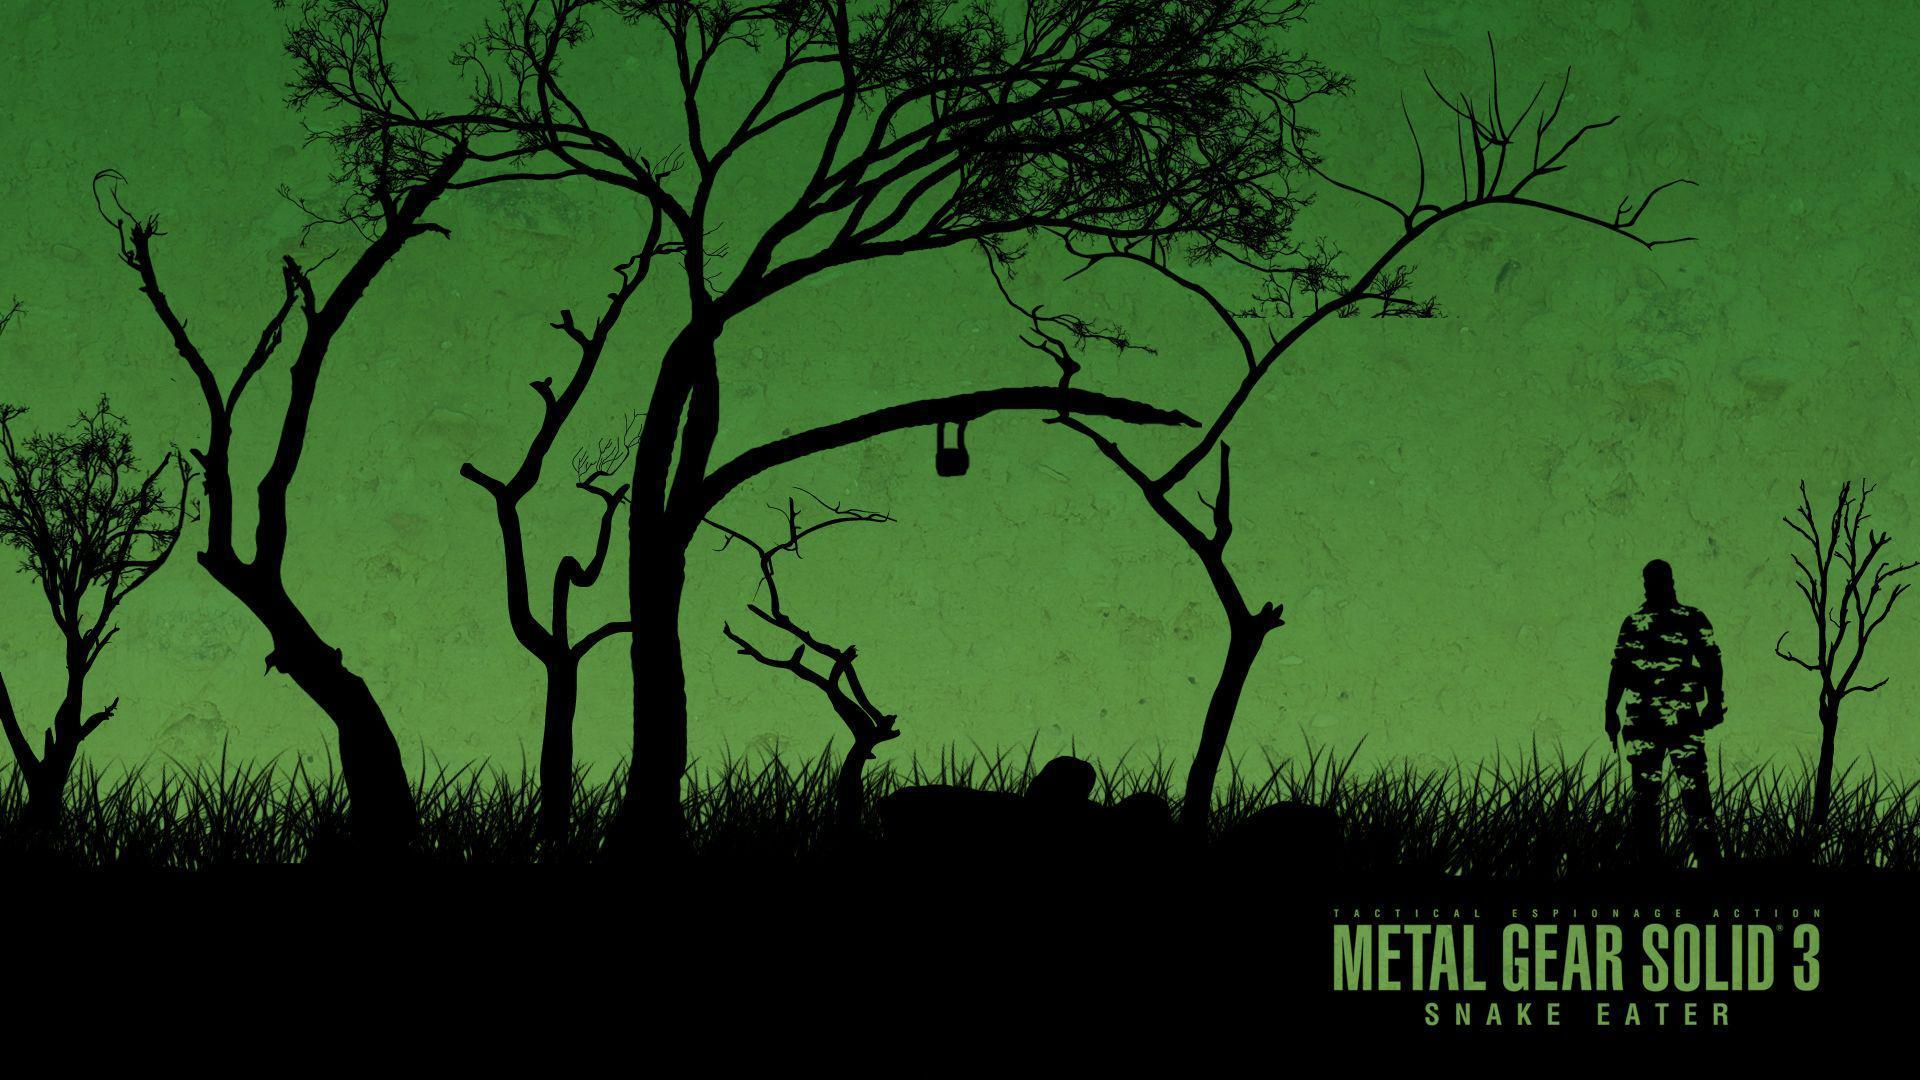 10 Metal Gear Solid 3 Snake Eater Wallpapers